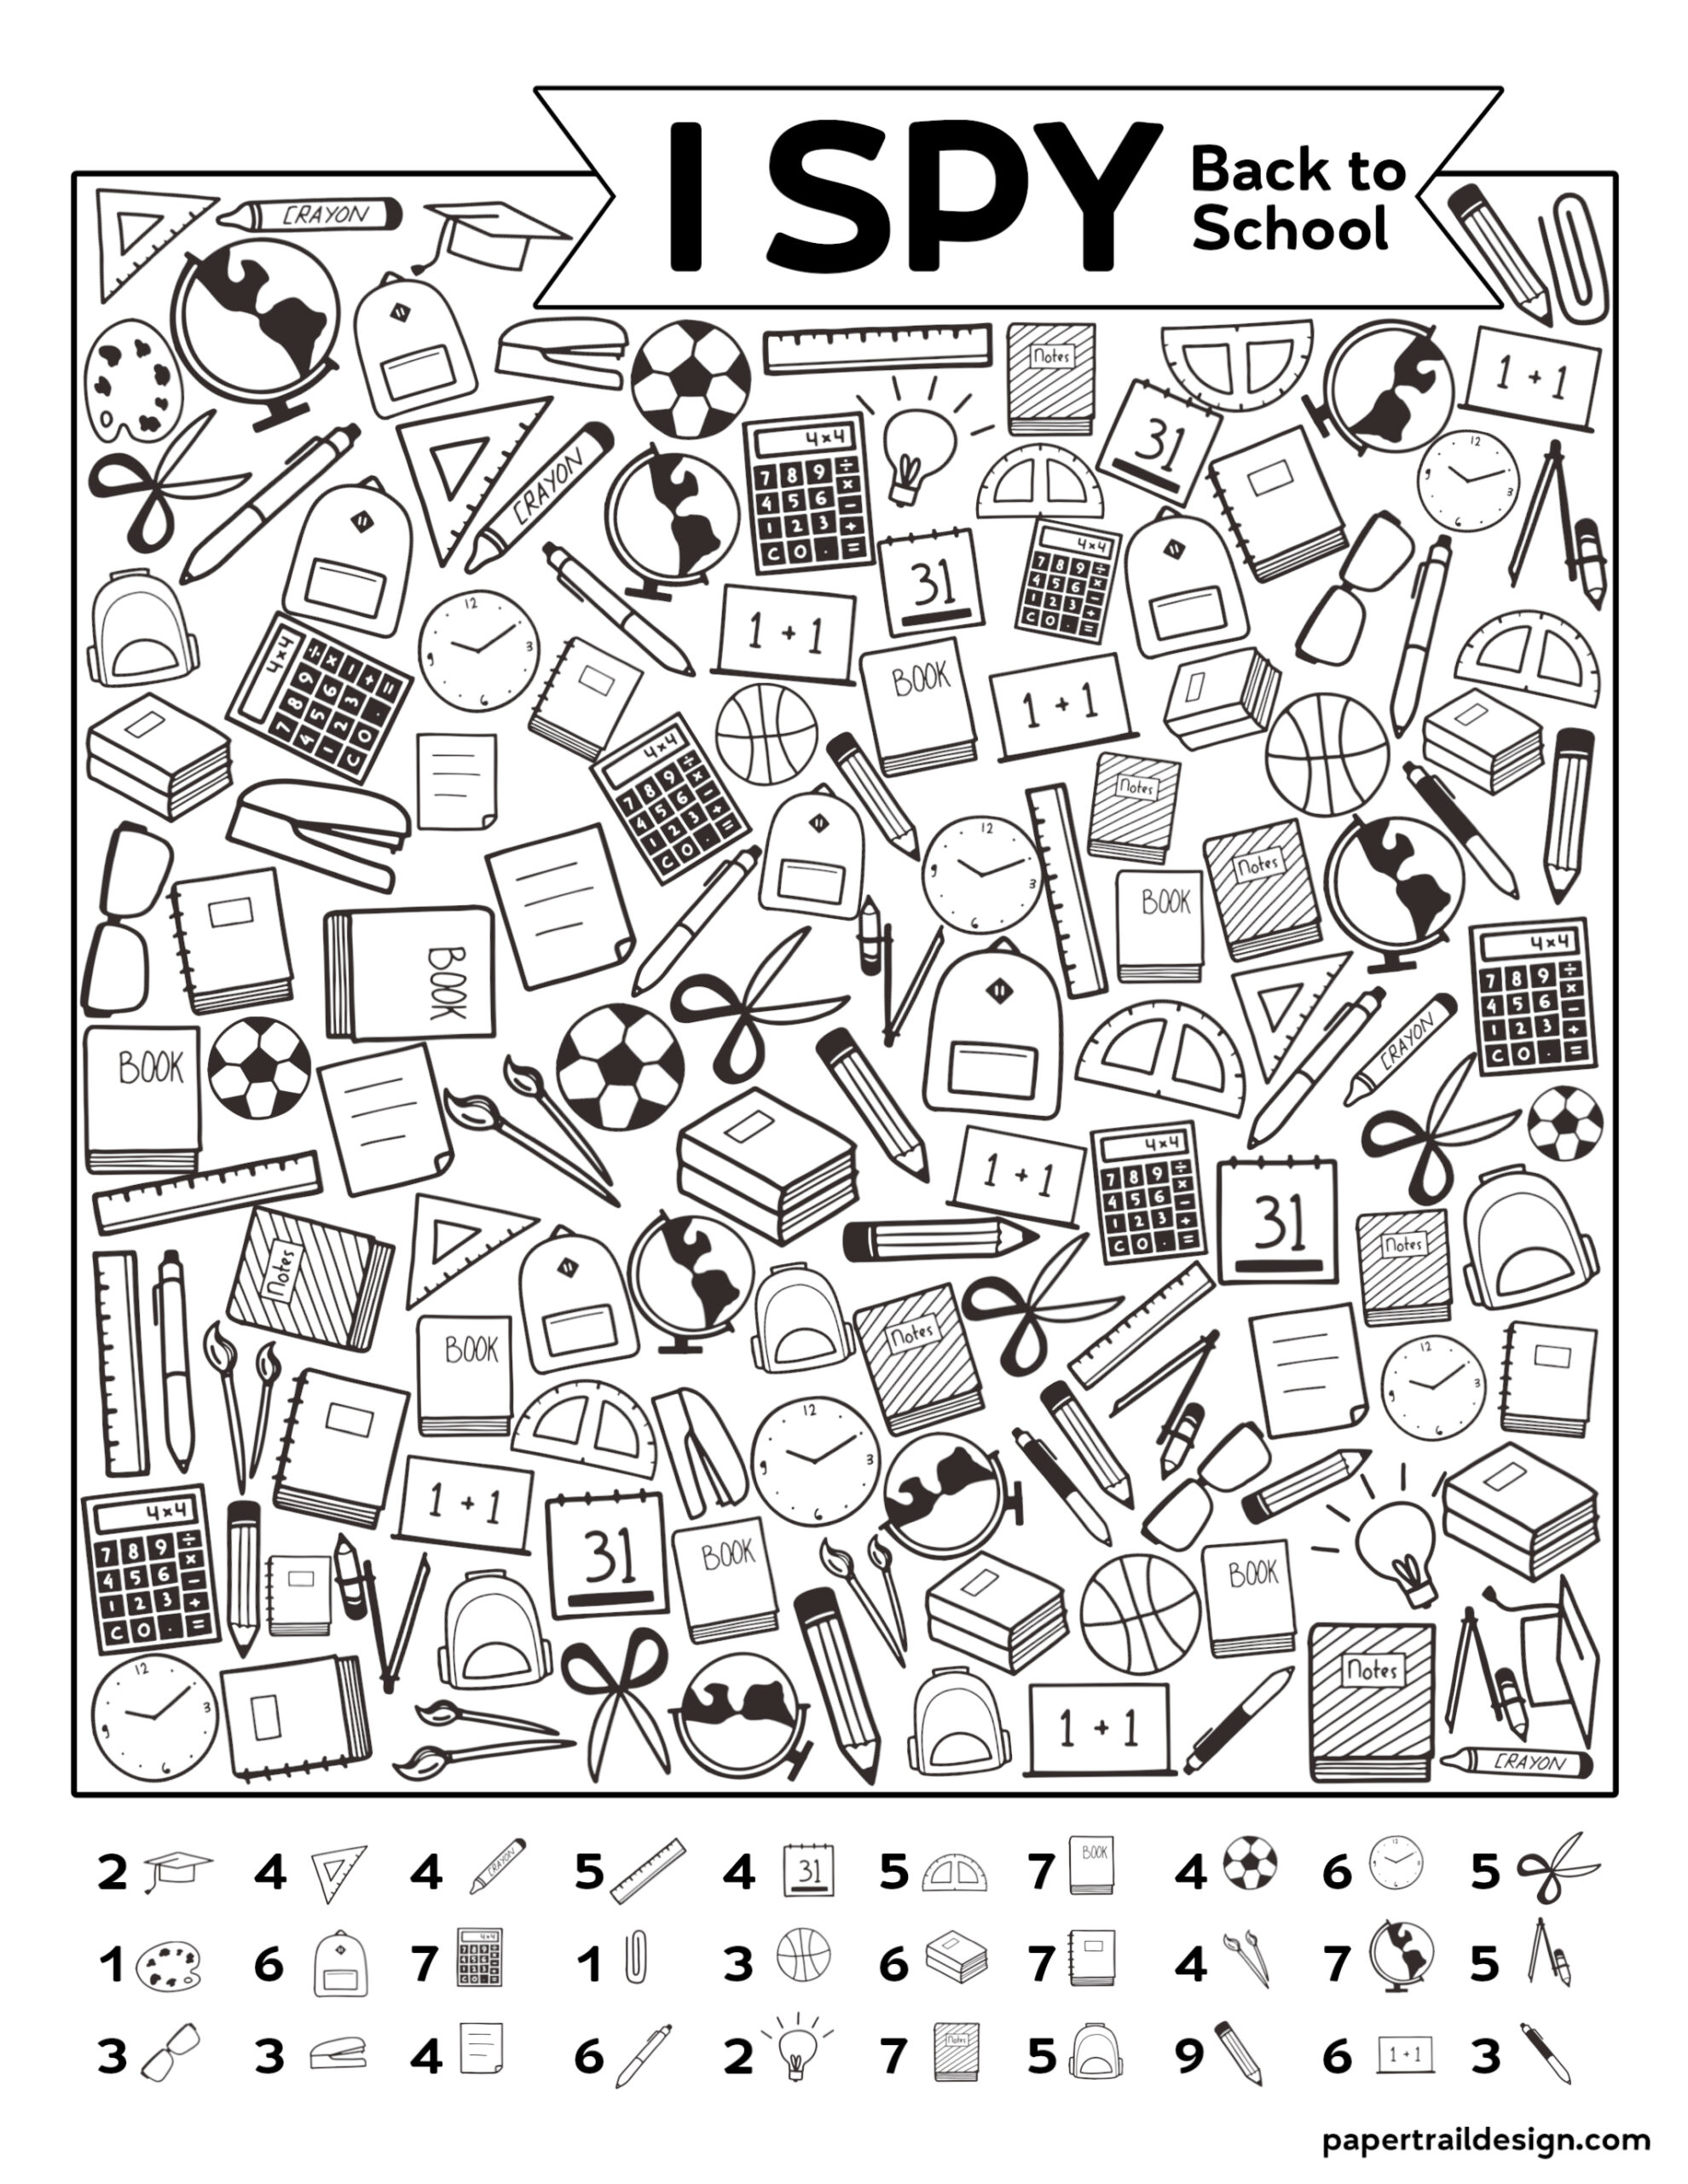 Free Printable I Spy Back to School Activity | Paper Trail ...